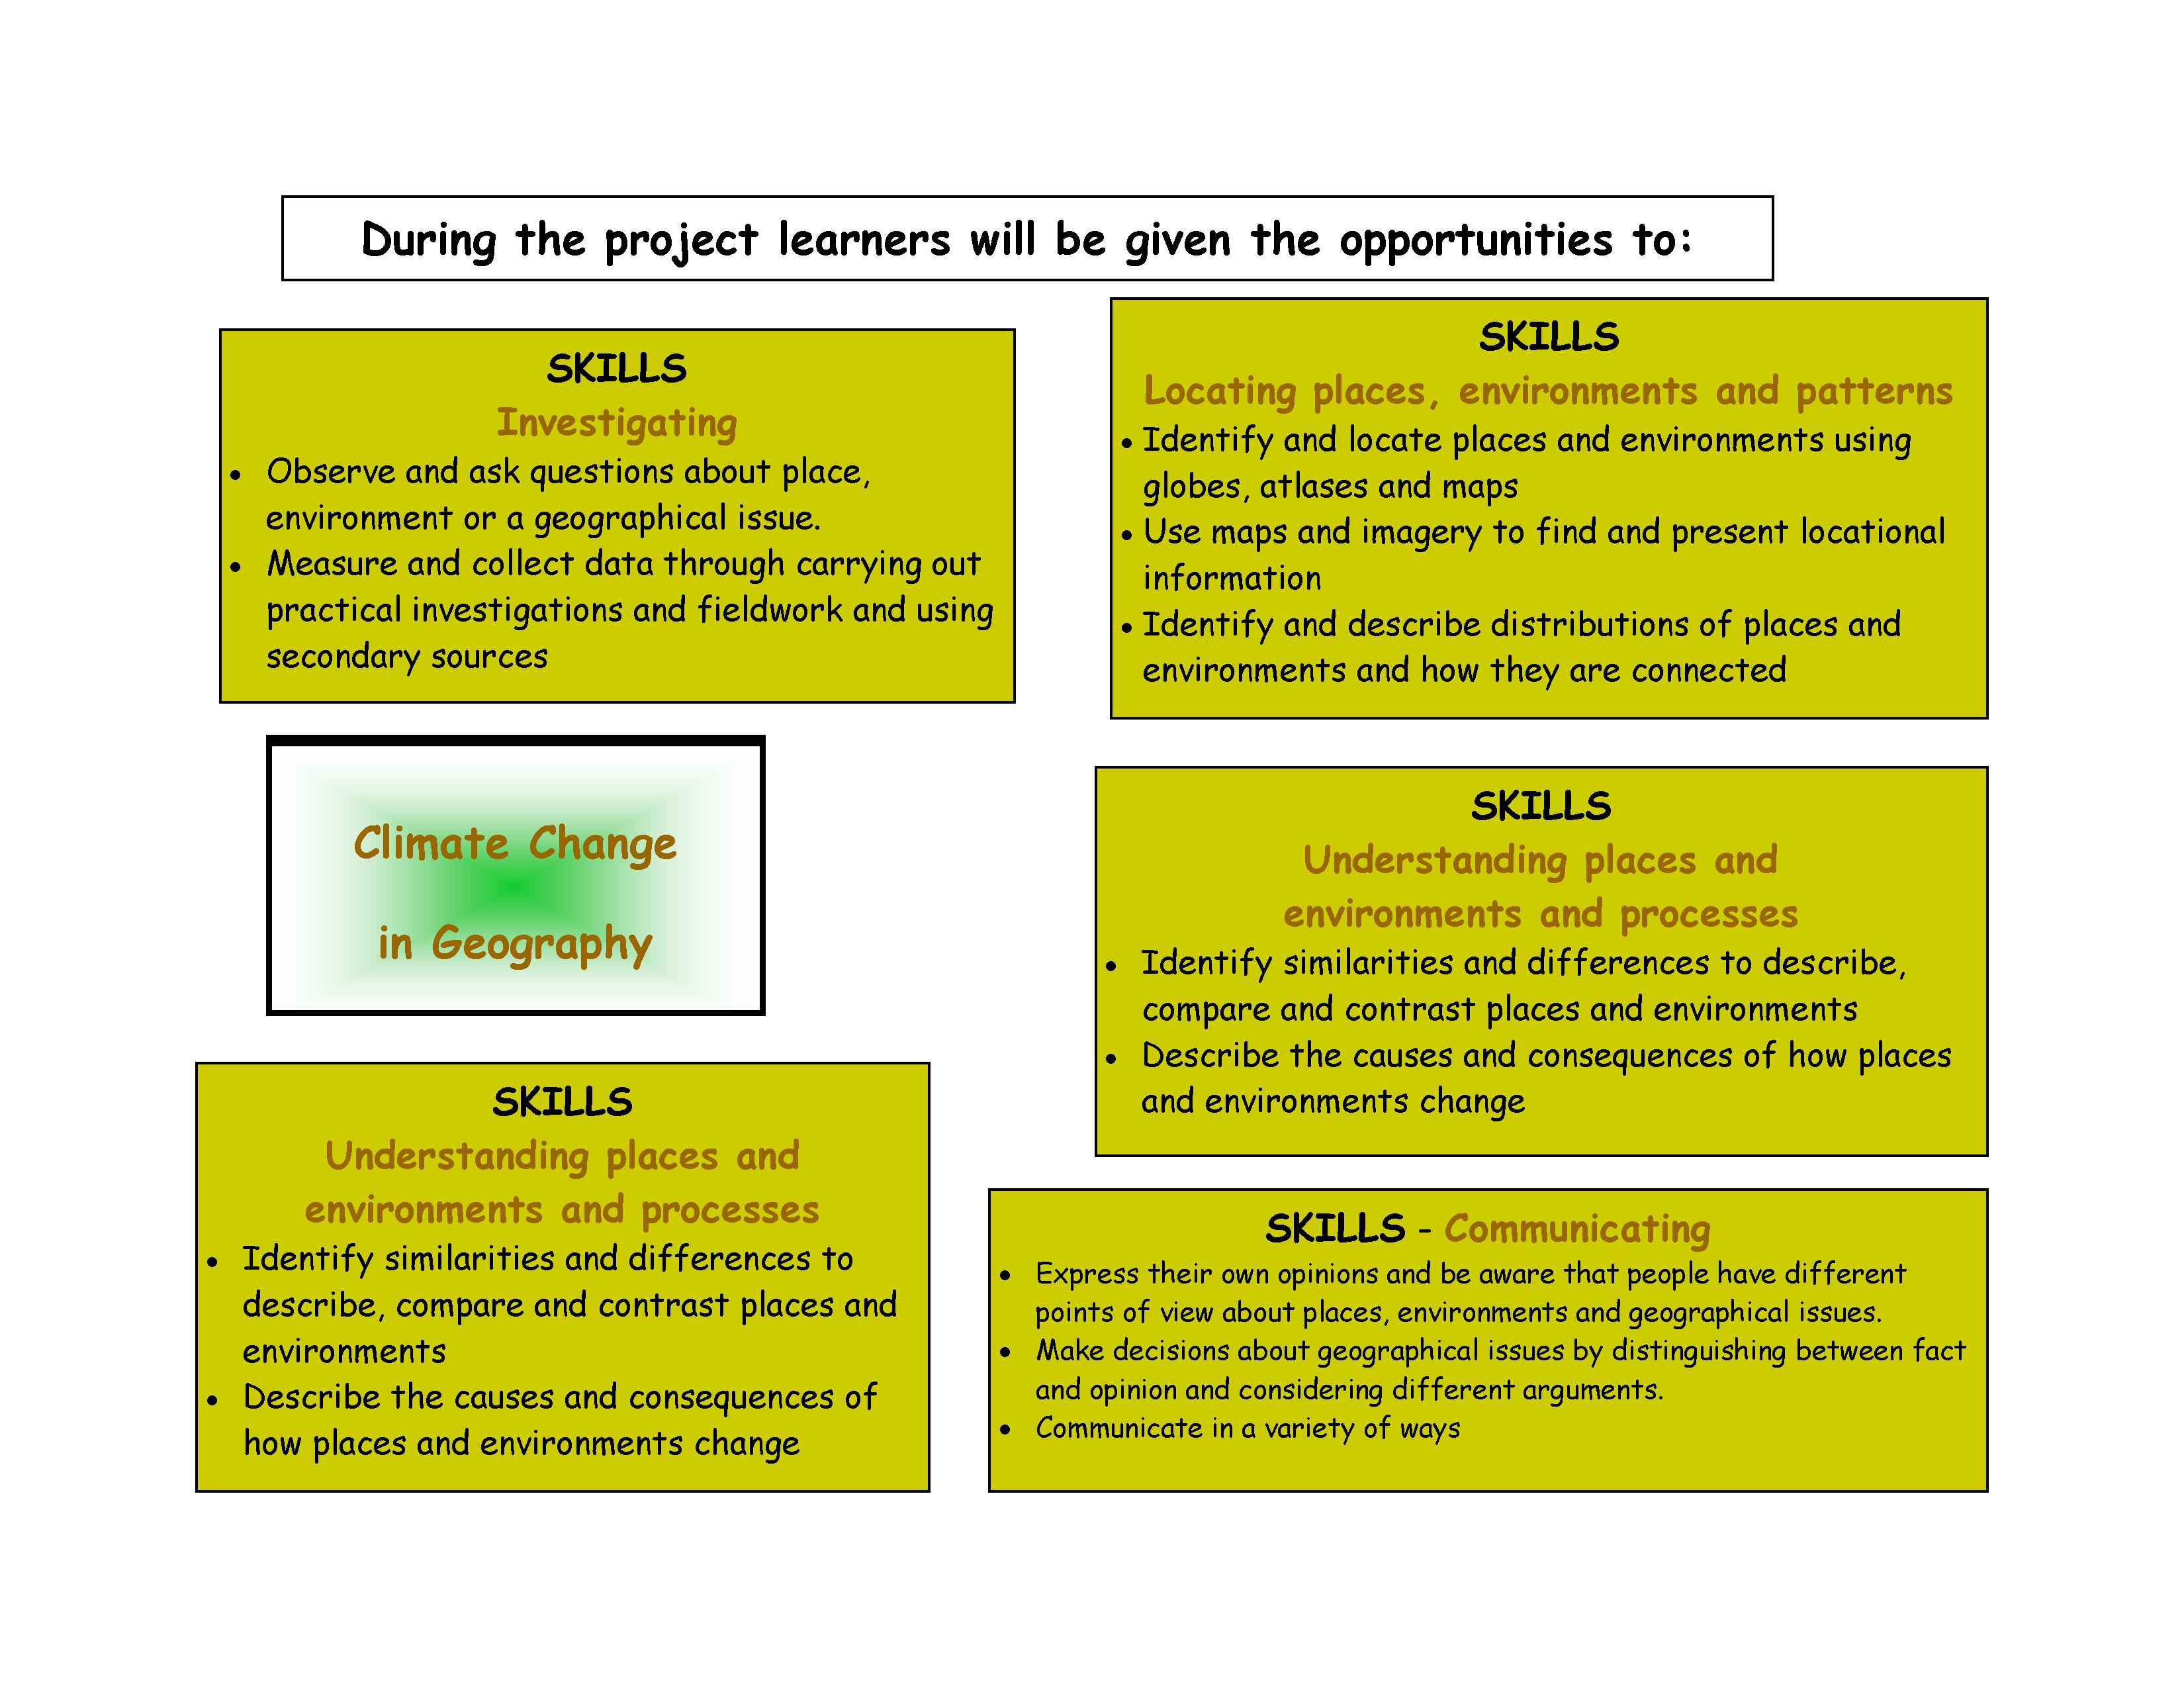 worksheet Global Warming Worksheet Ks2 theme consumption and waste skills web for climate change in geography